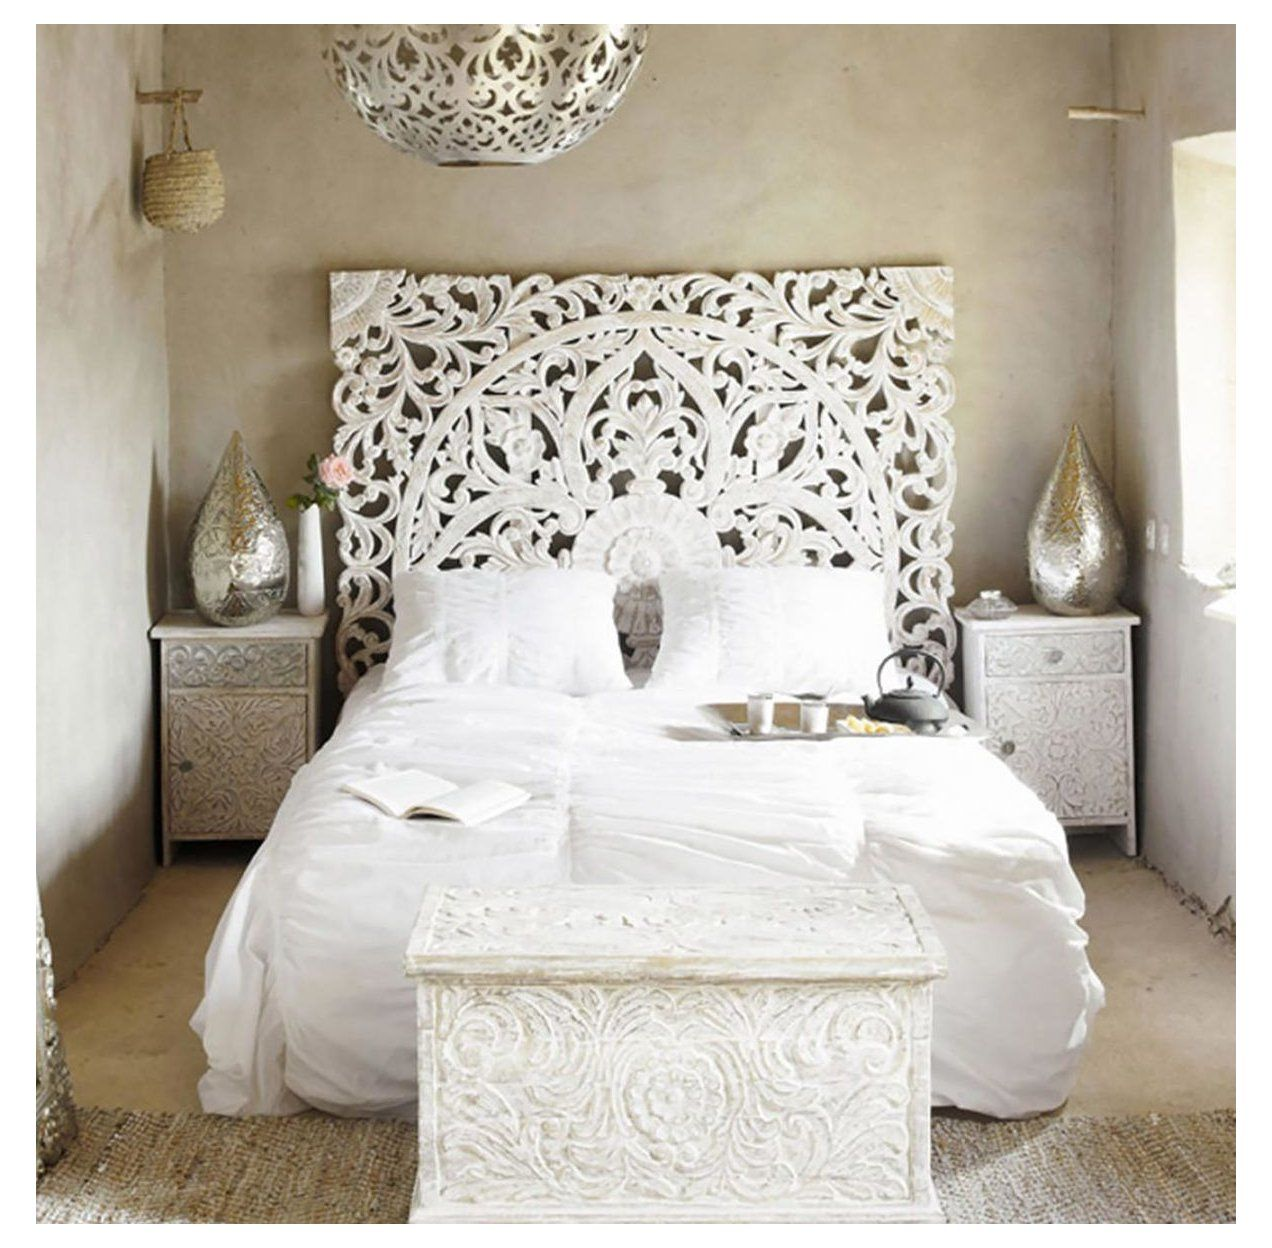 King Size Balinese Headboard Wood Carving Handmade In Chiang Mai Headboards For Beds White Bed He In 2020 Headboards For Beds Bed Headboard Wood Bedroom Headboard